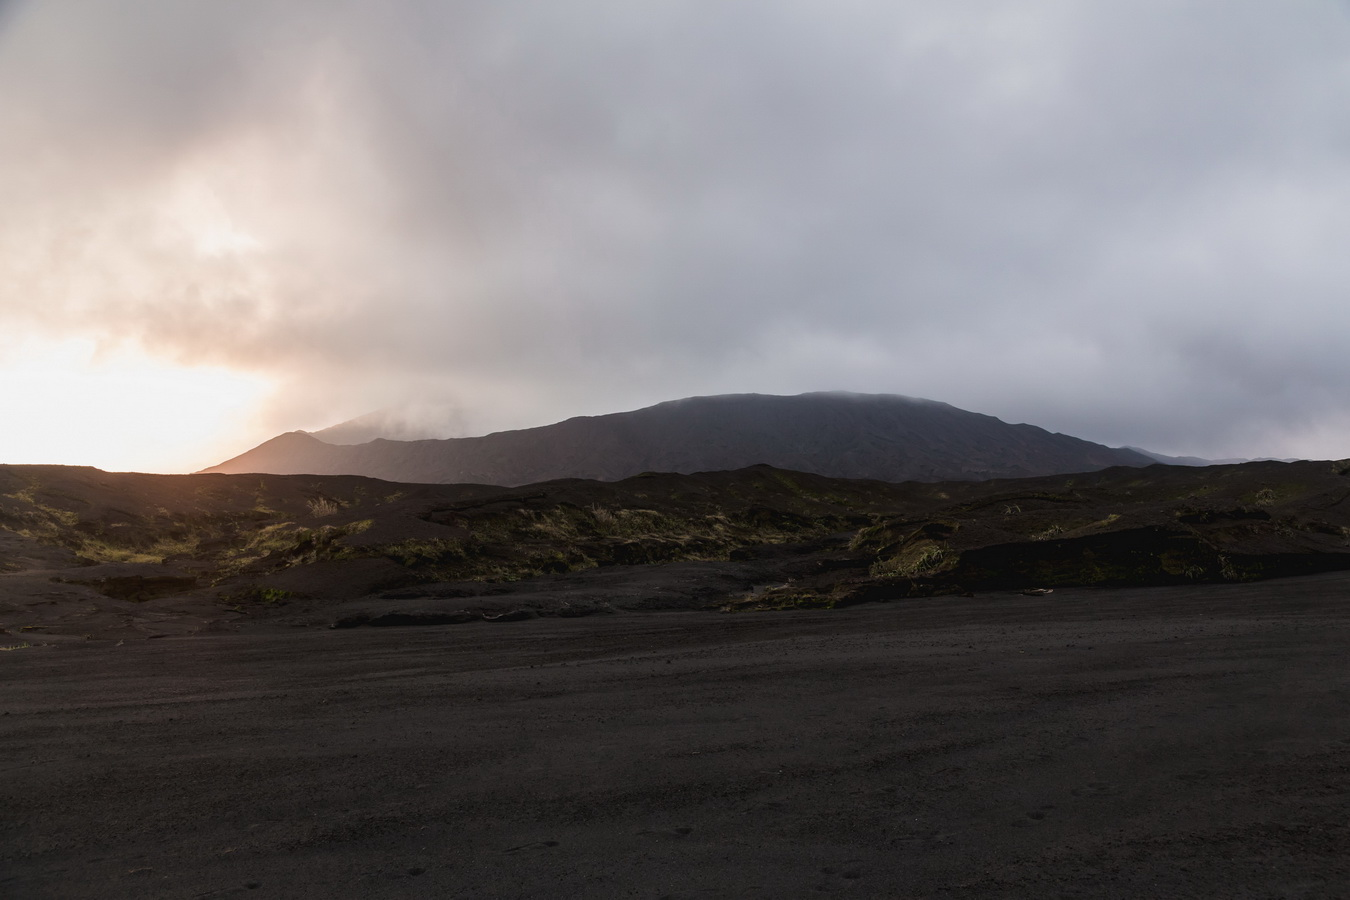 sunset,lava fields,clouds,benbow,west camp,crater,volcano,Ambrym, Vanuatu